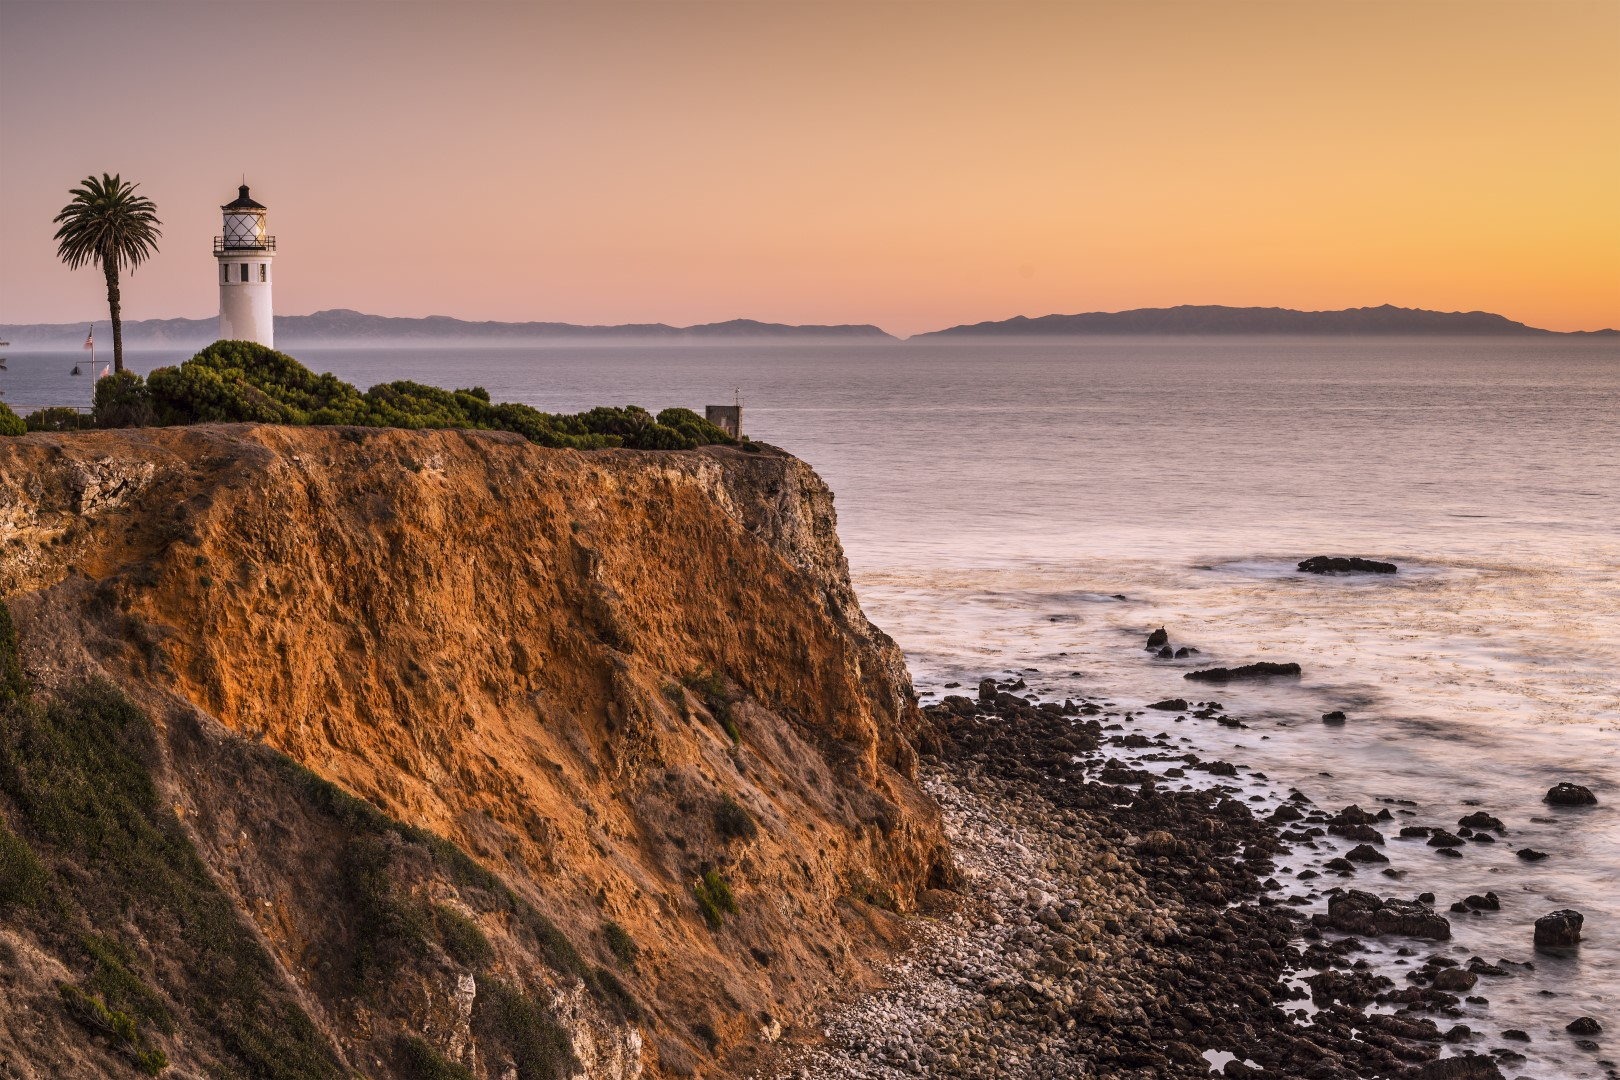 Point Vicente Park and Lighthouse, Rancho Palos Verdes, CA